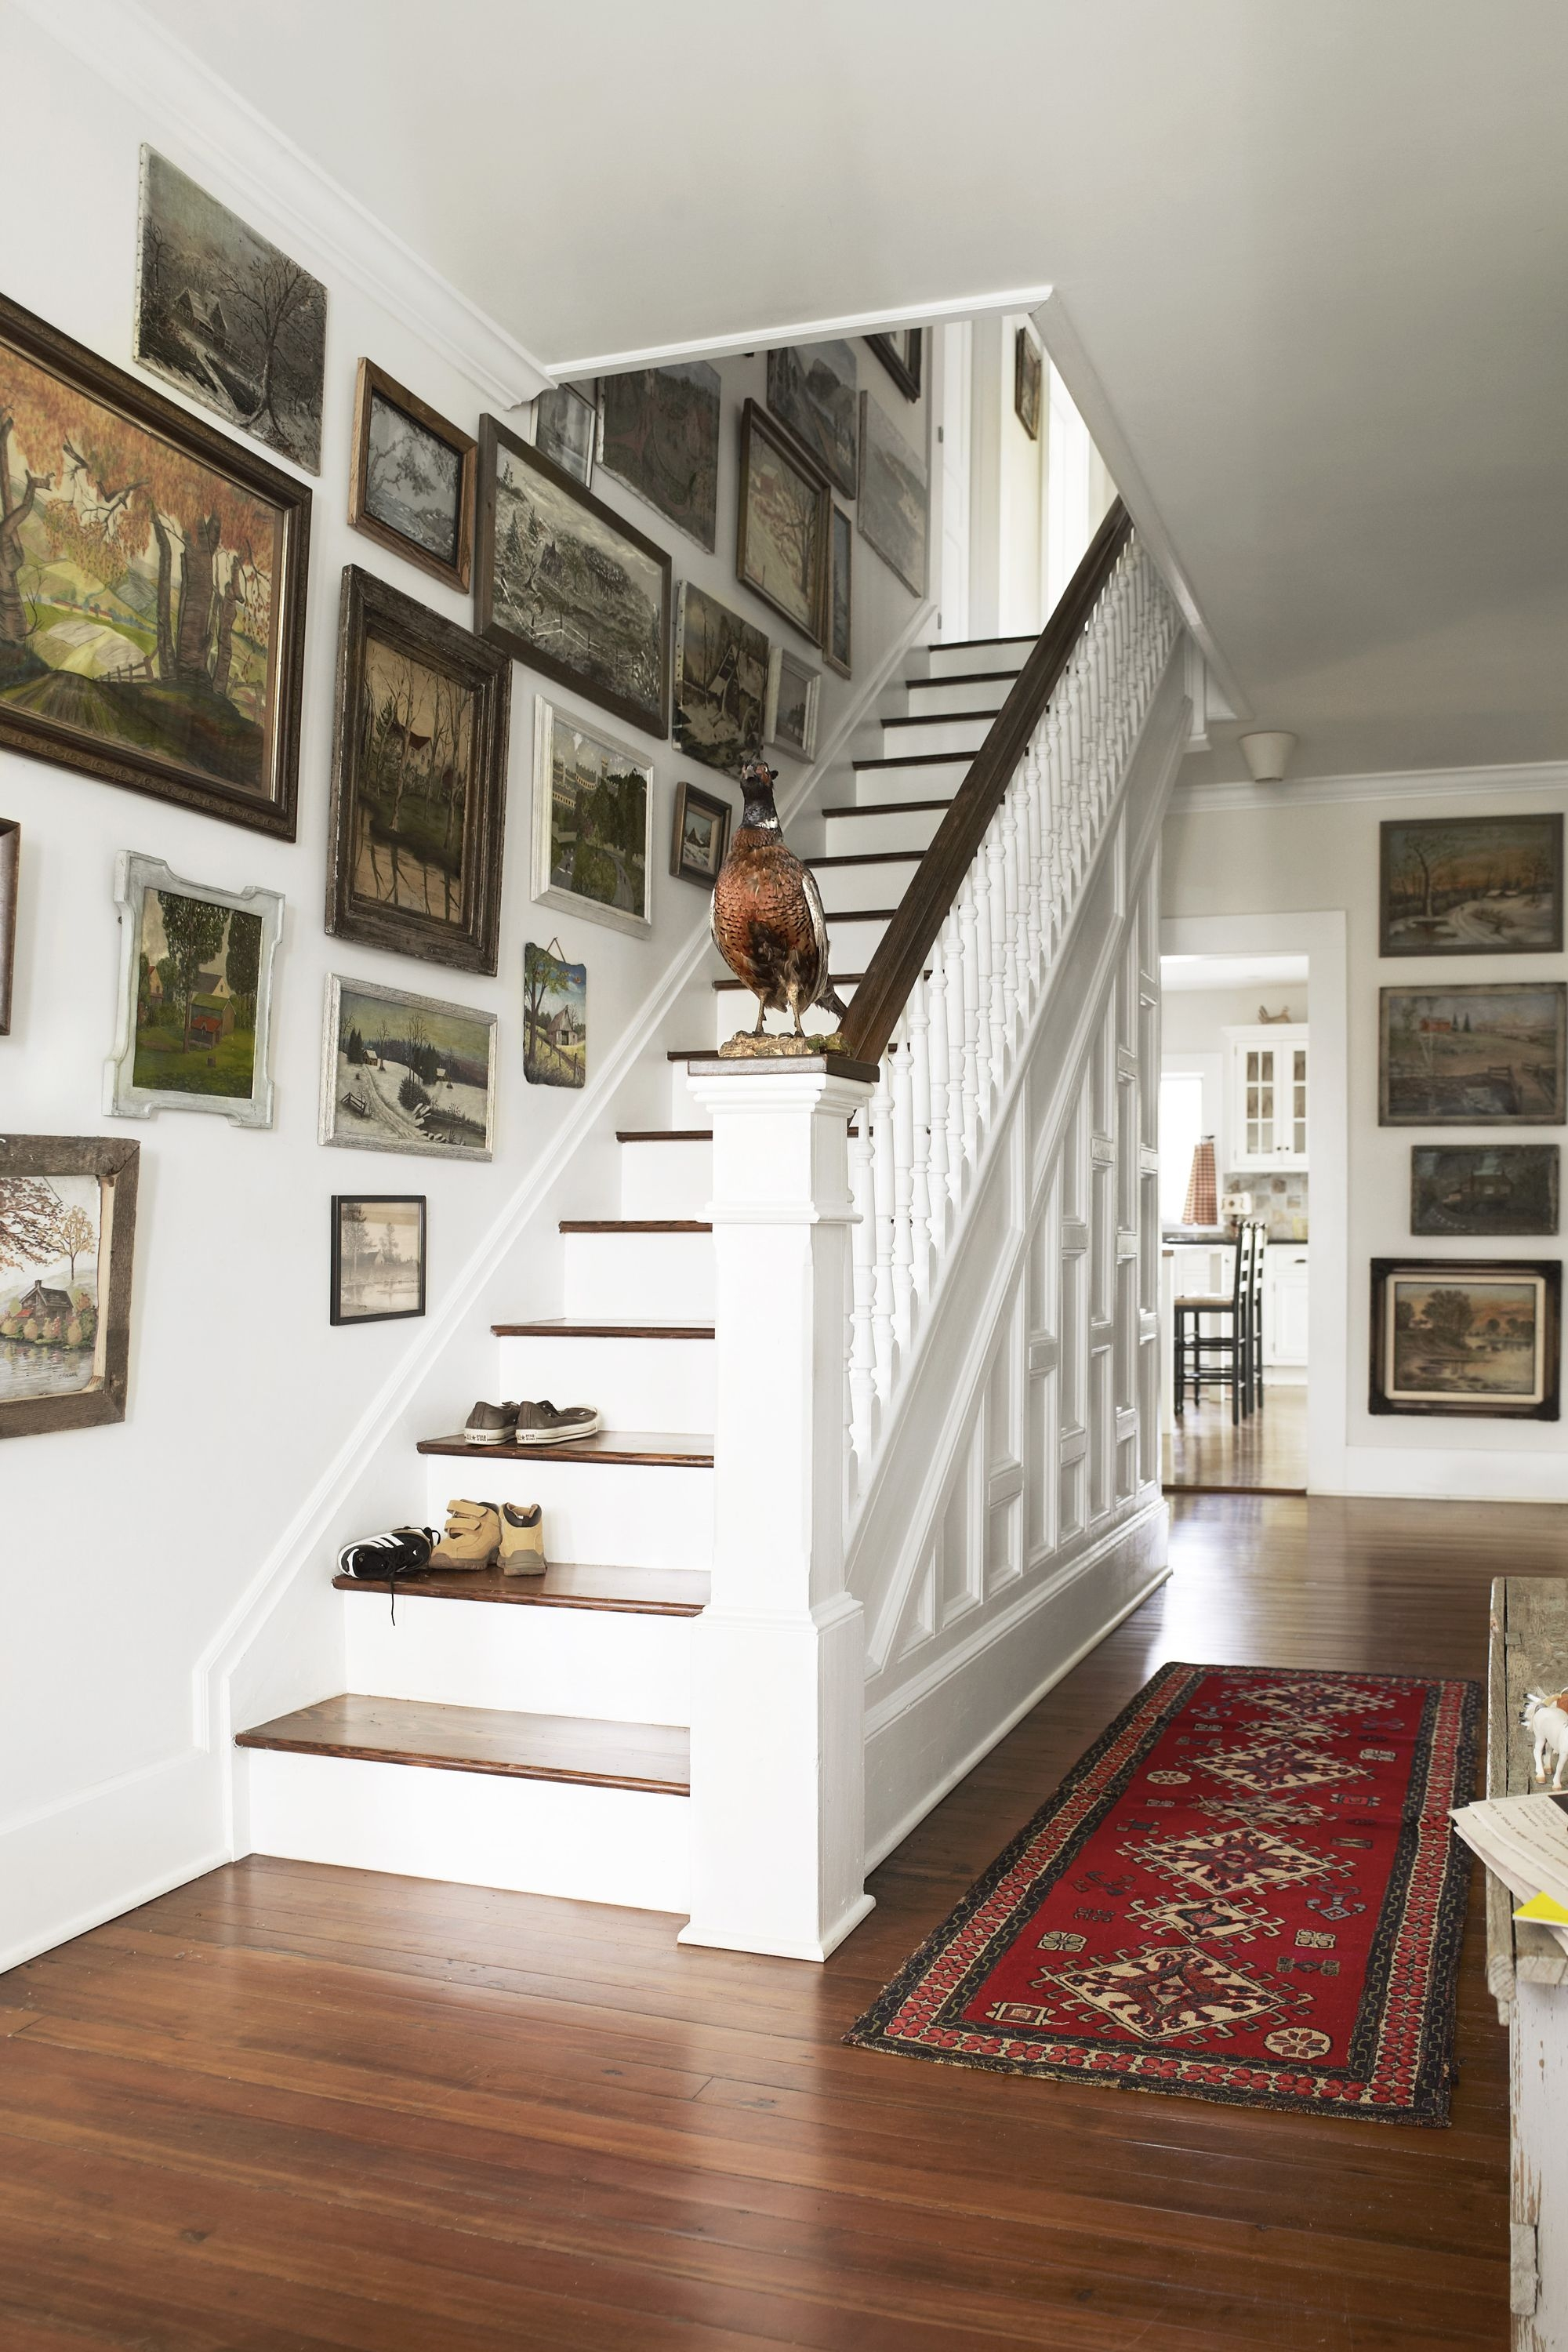 55 Best Staircase Ideas Top Ways To Decorate A Stairway | Style Of Stairs Inside House | Outside India House | Spiral | Design | Mansion | Historic House